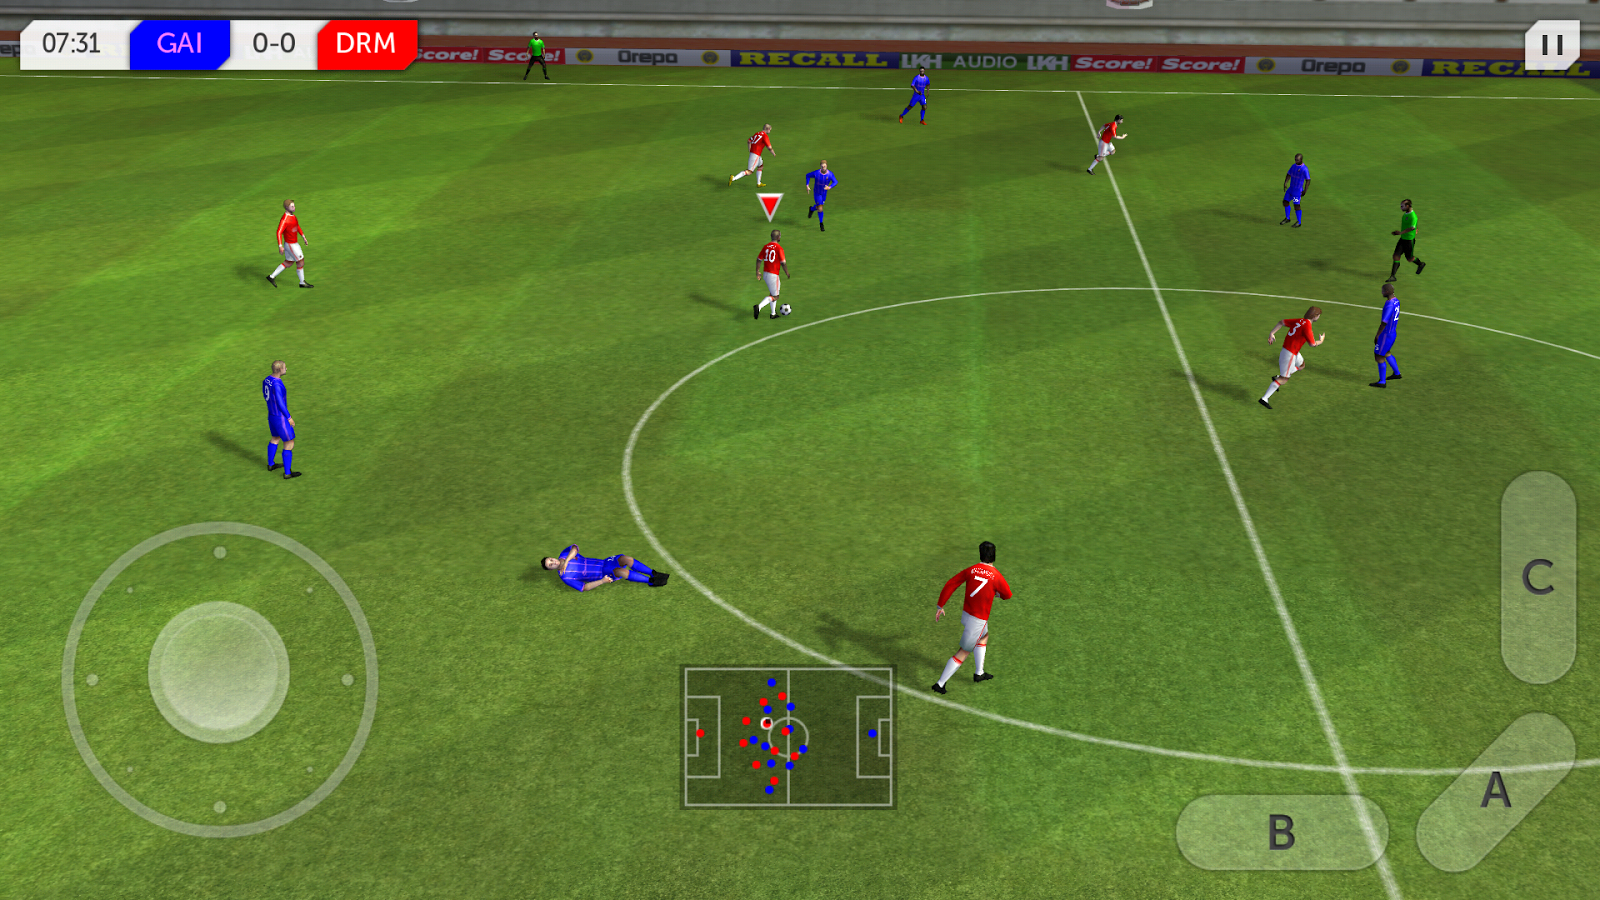 Download best football or soccer games for android in 2014 - Dream League Soccer